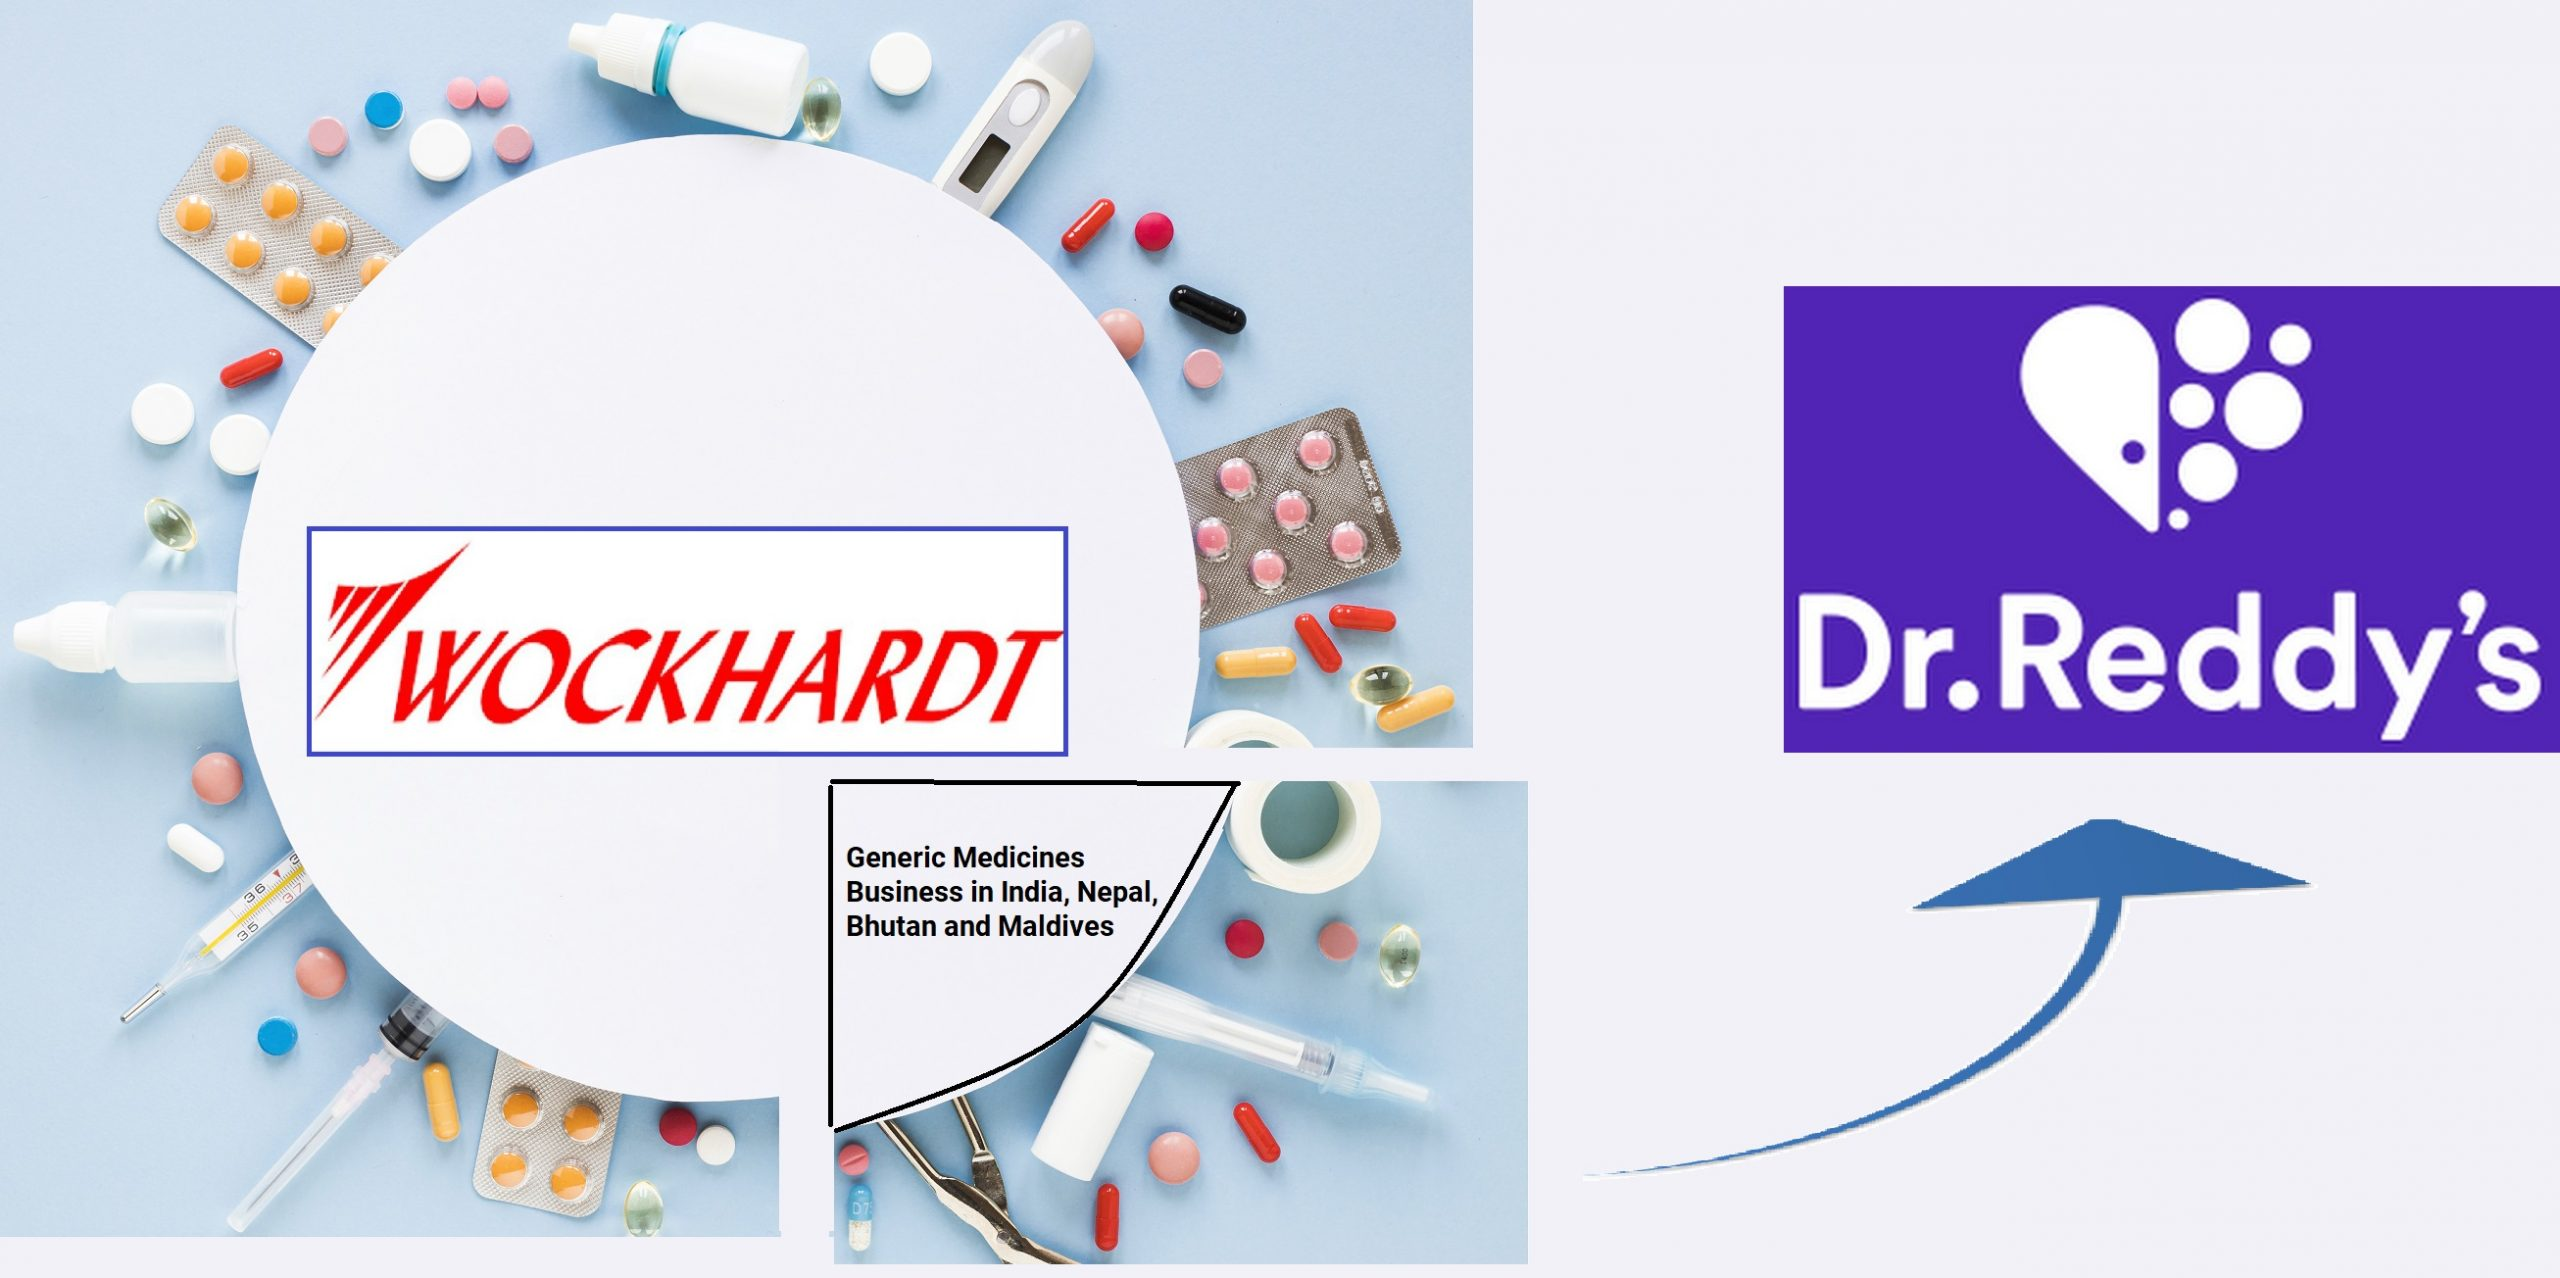 DrReddys-Lab-Wockhardt-Sale-Generics-Business